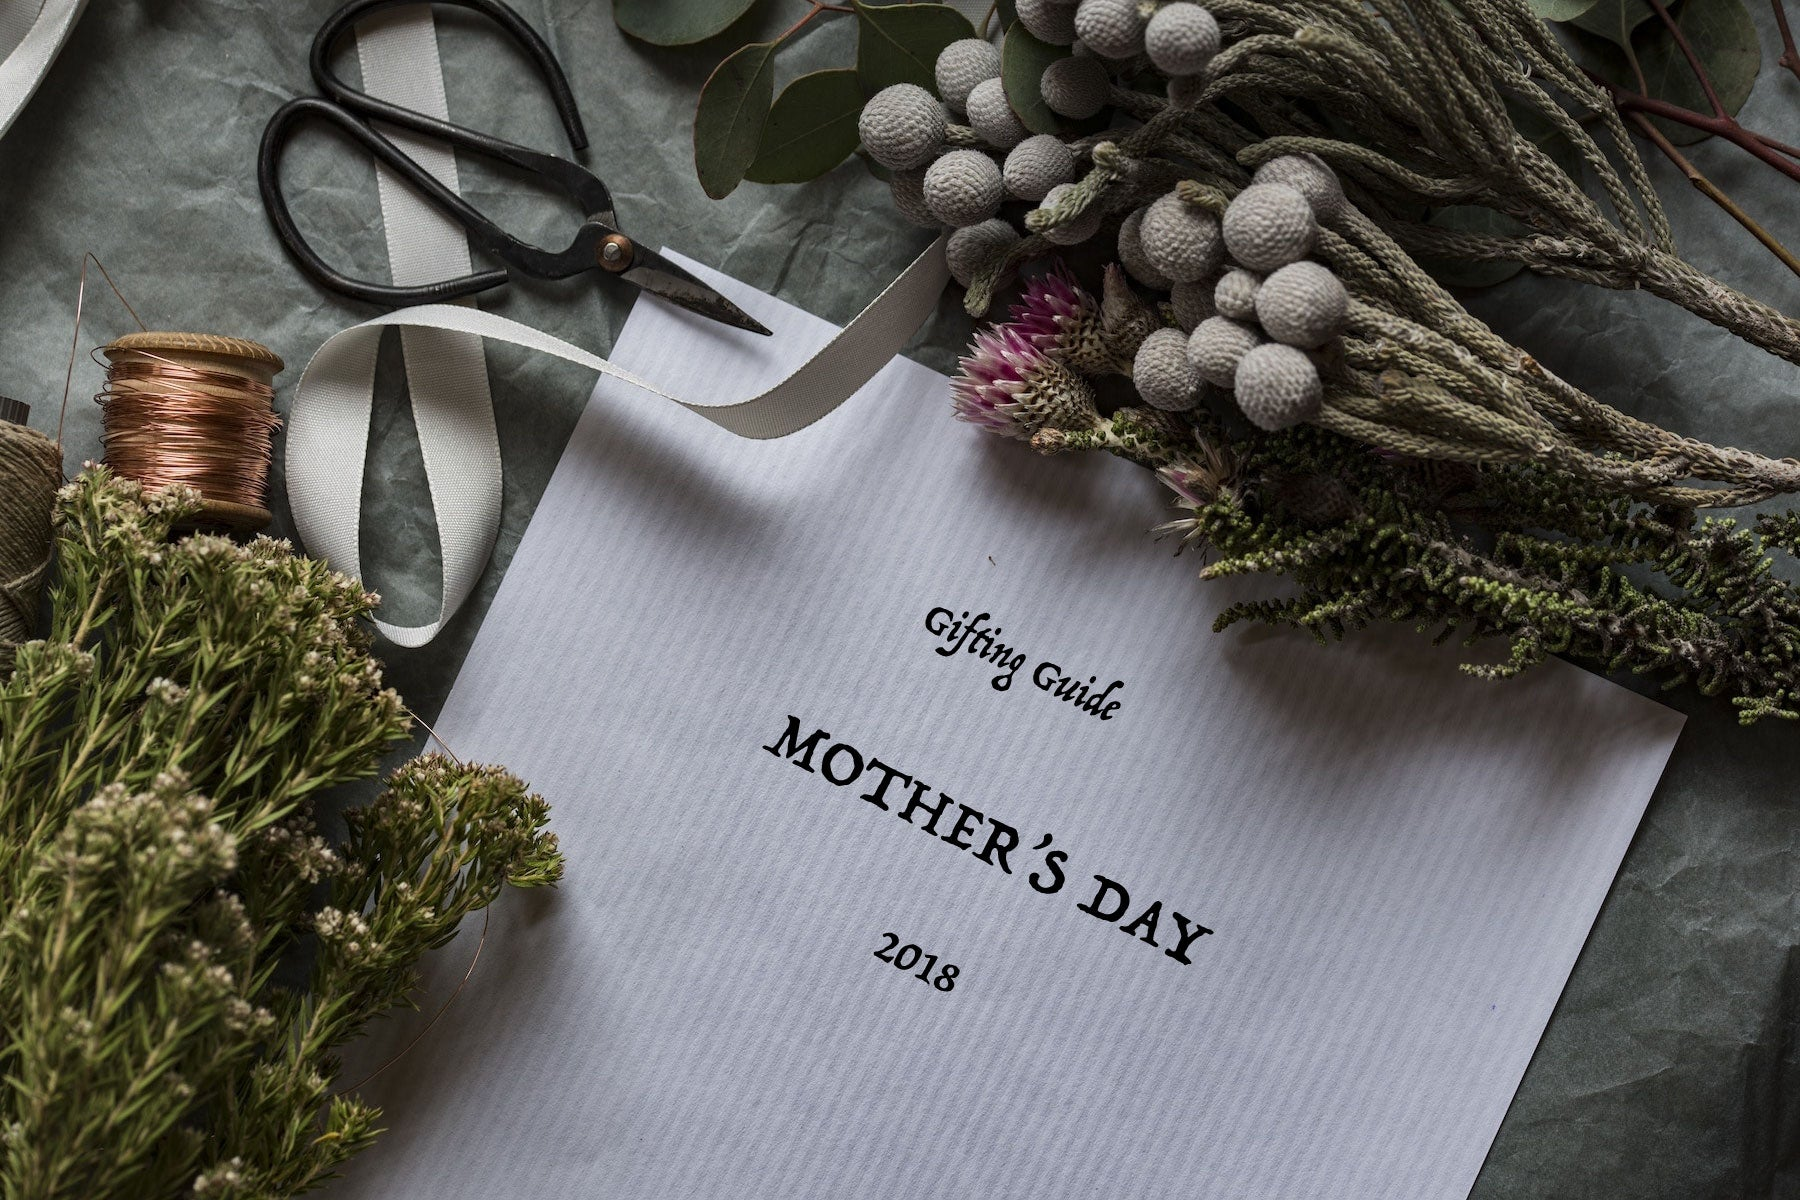 Home Artisan Mother's Day 2018 Gift Guide